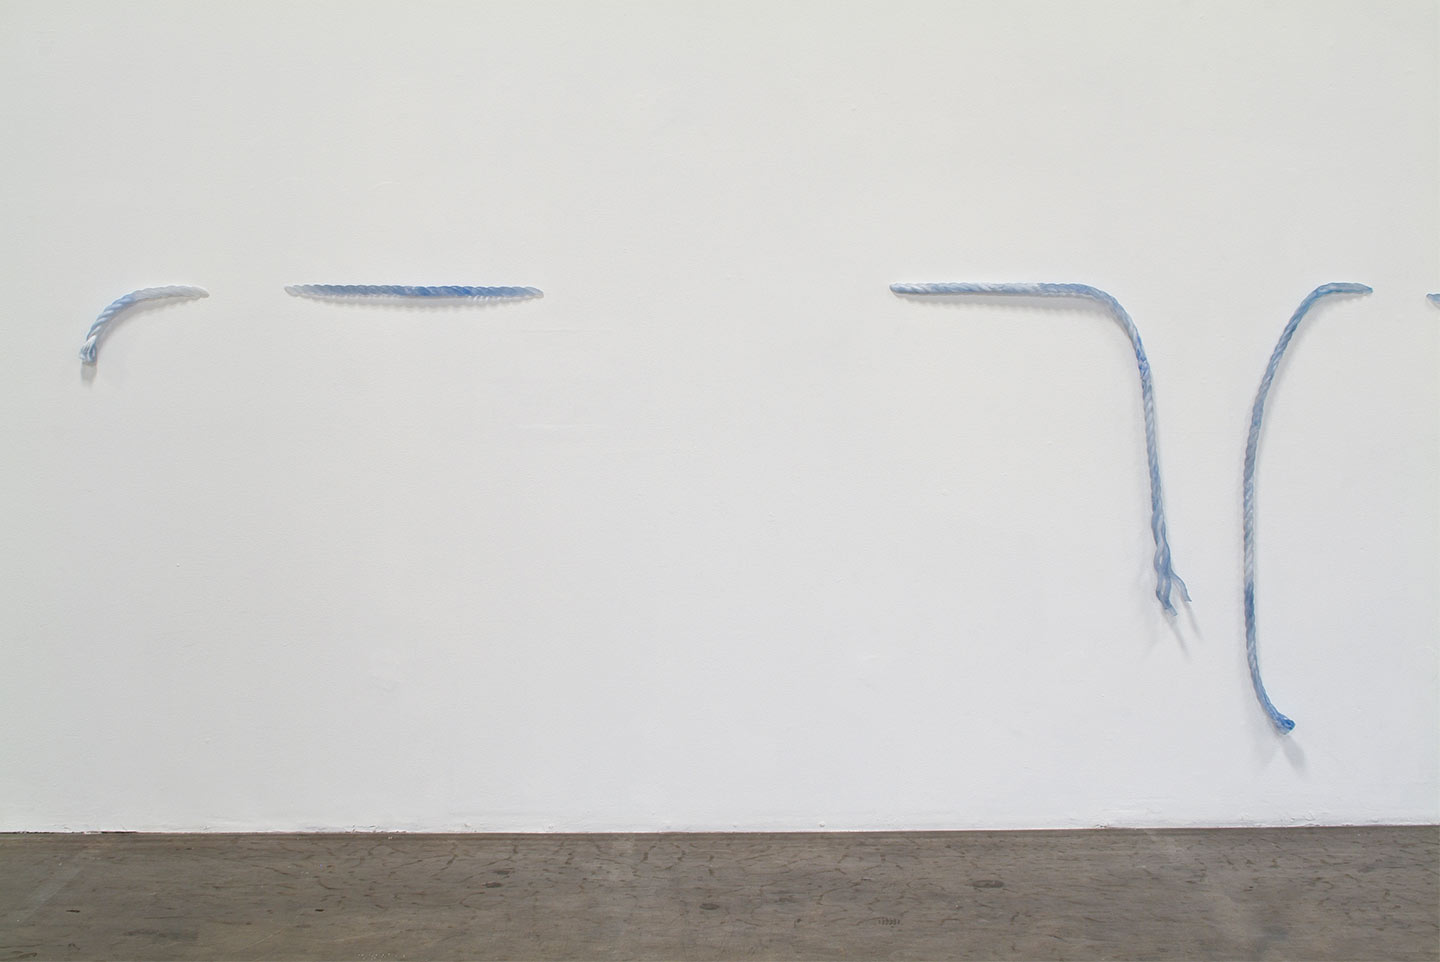 Installation view,  Out of the Blue  ,  solo exhibition at Shoshana Wayne Gallery, CA, 2004